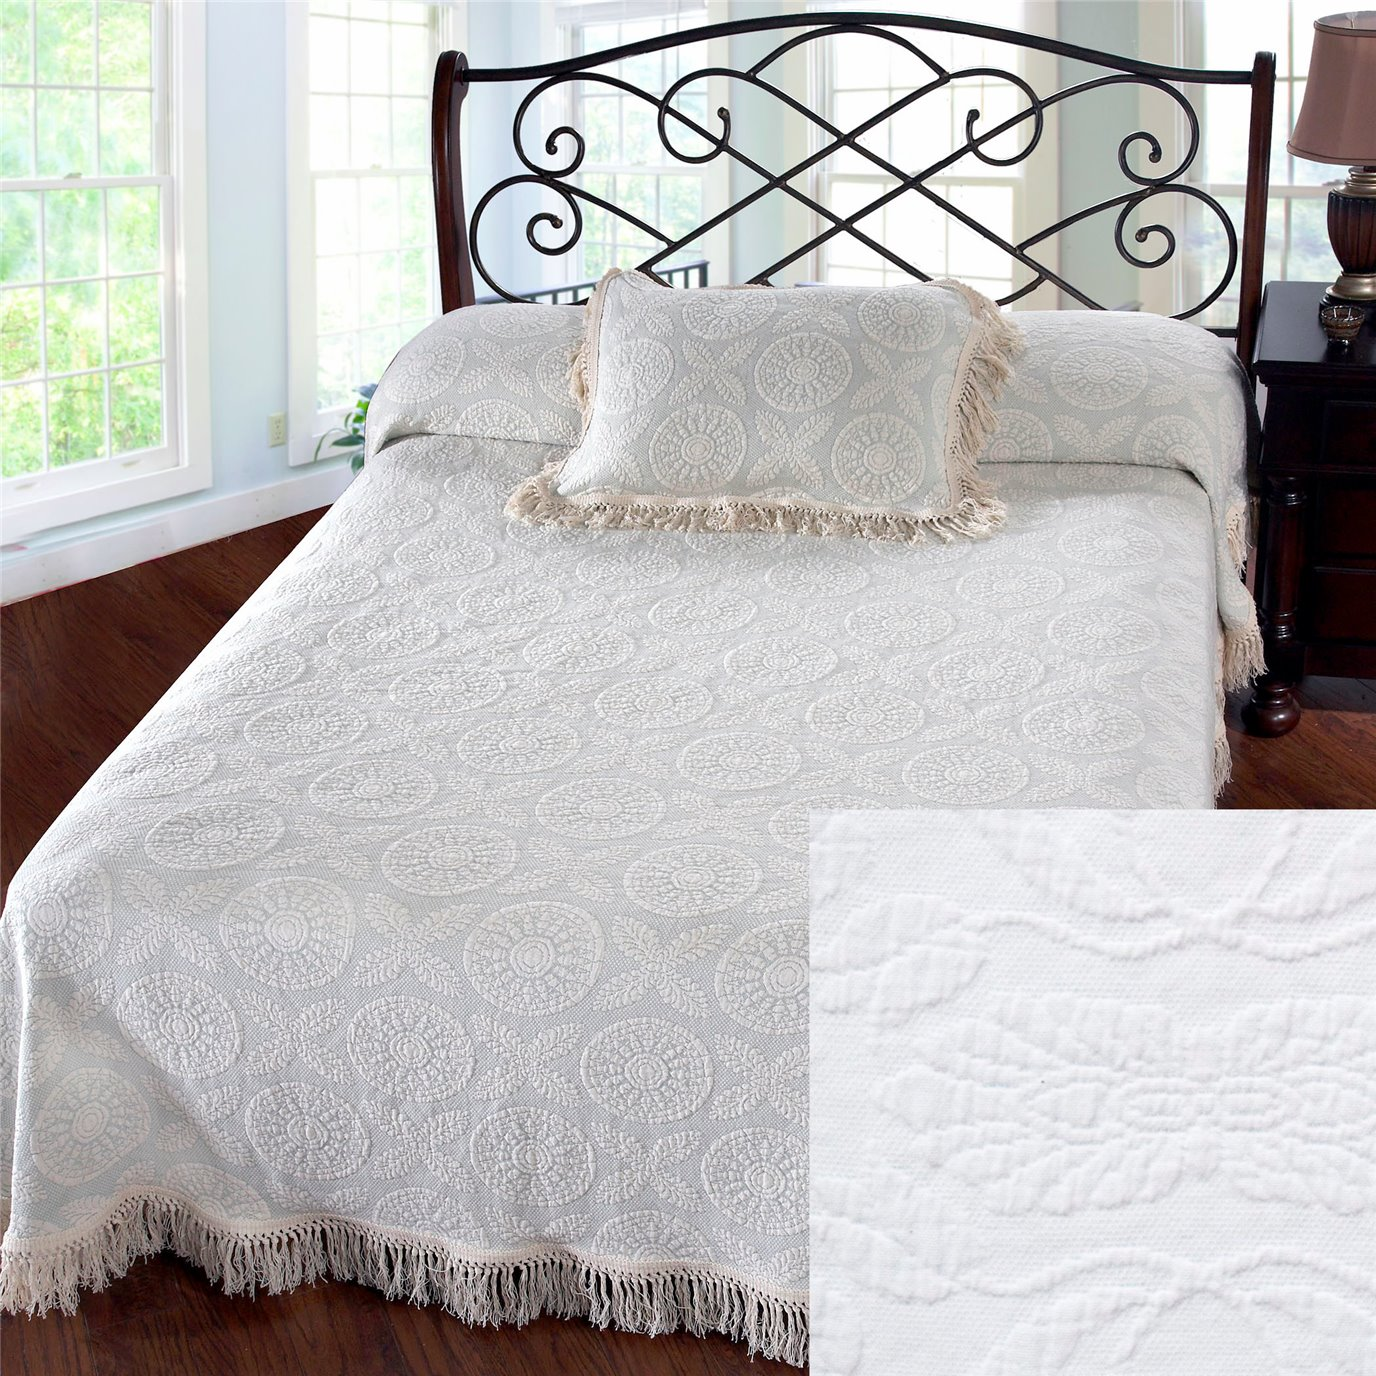 Heirloom Queen White Bedspread